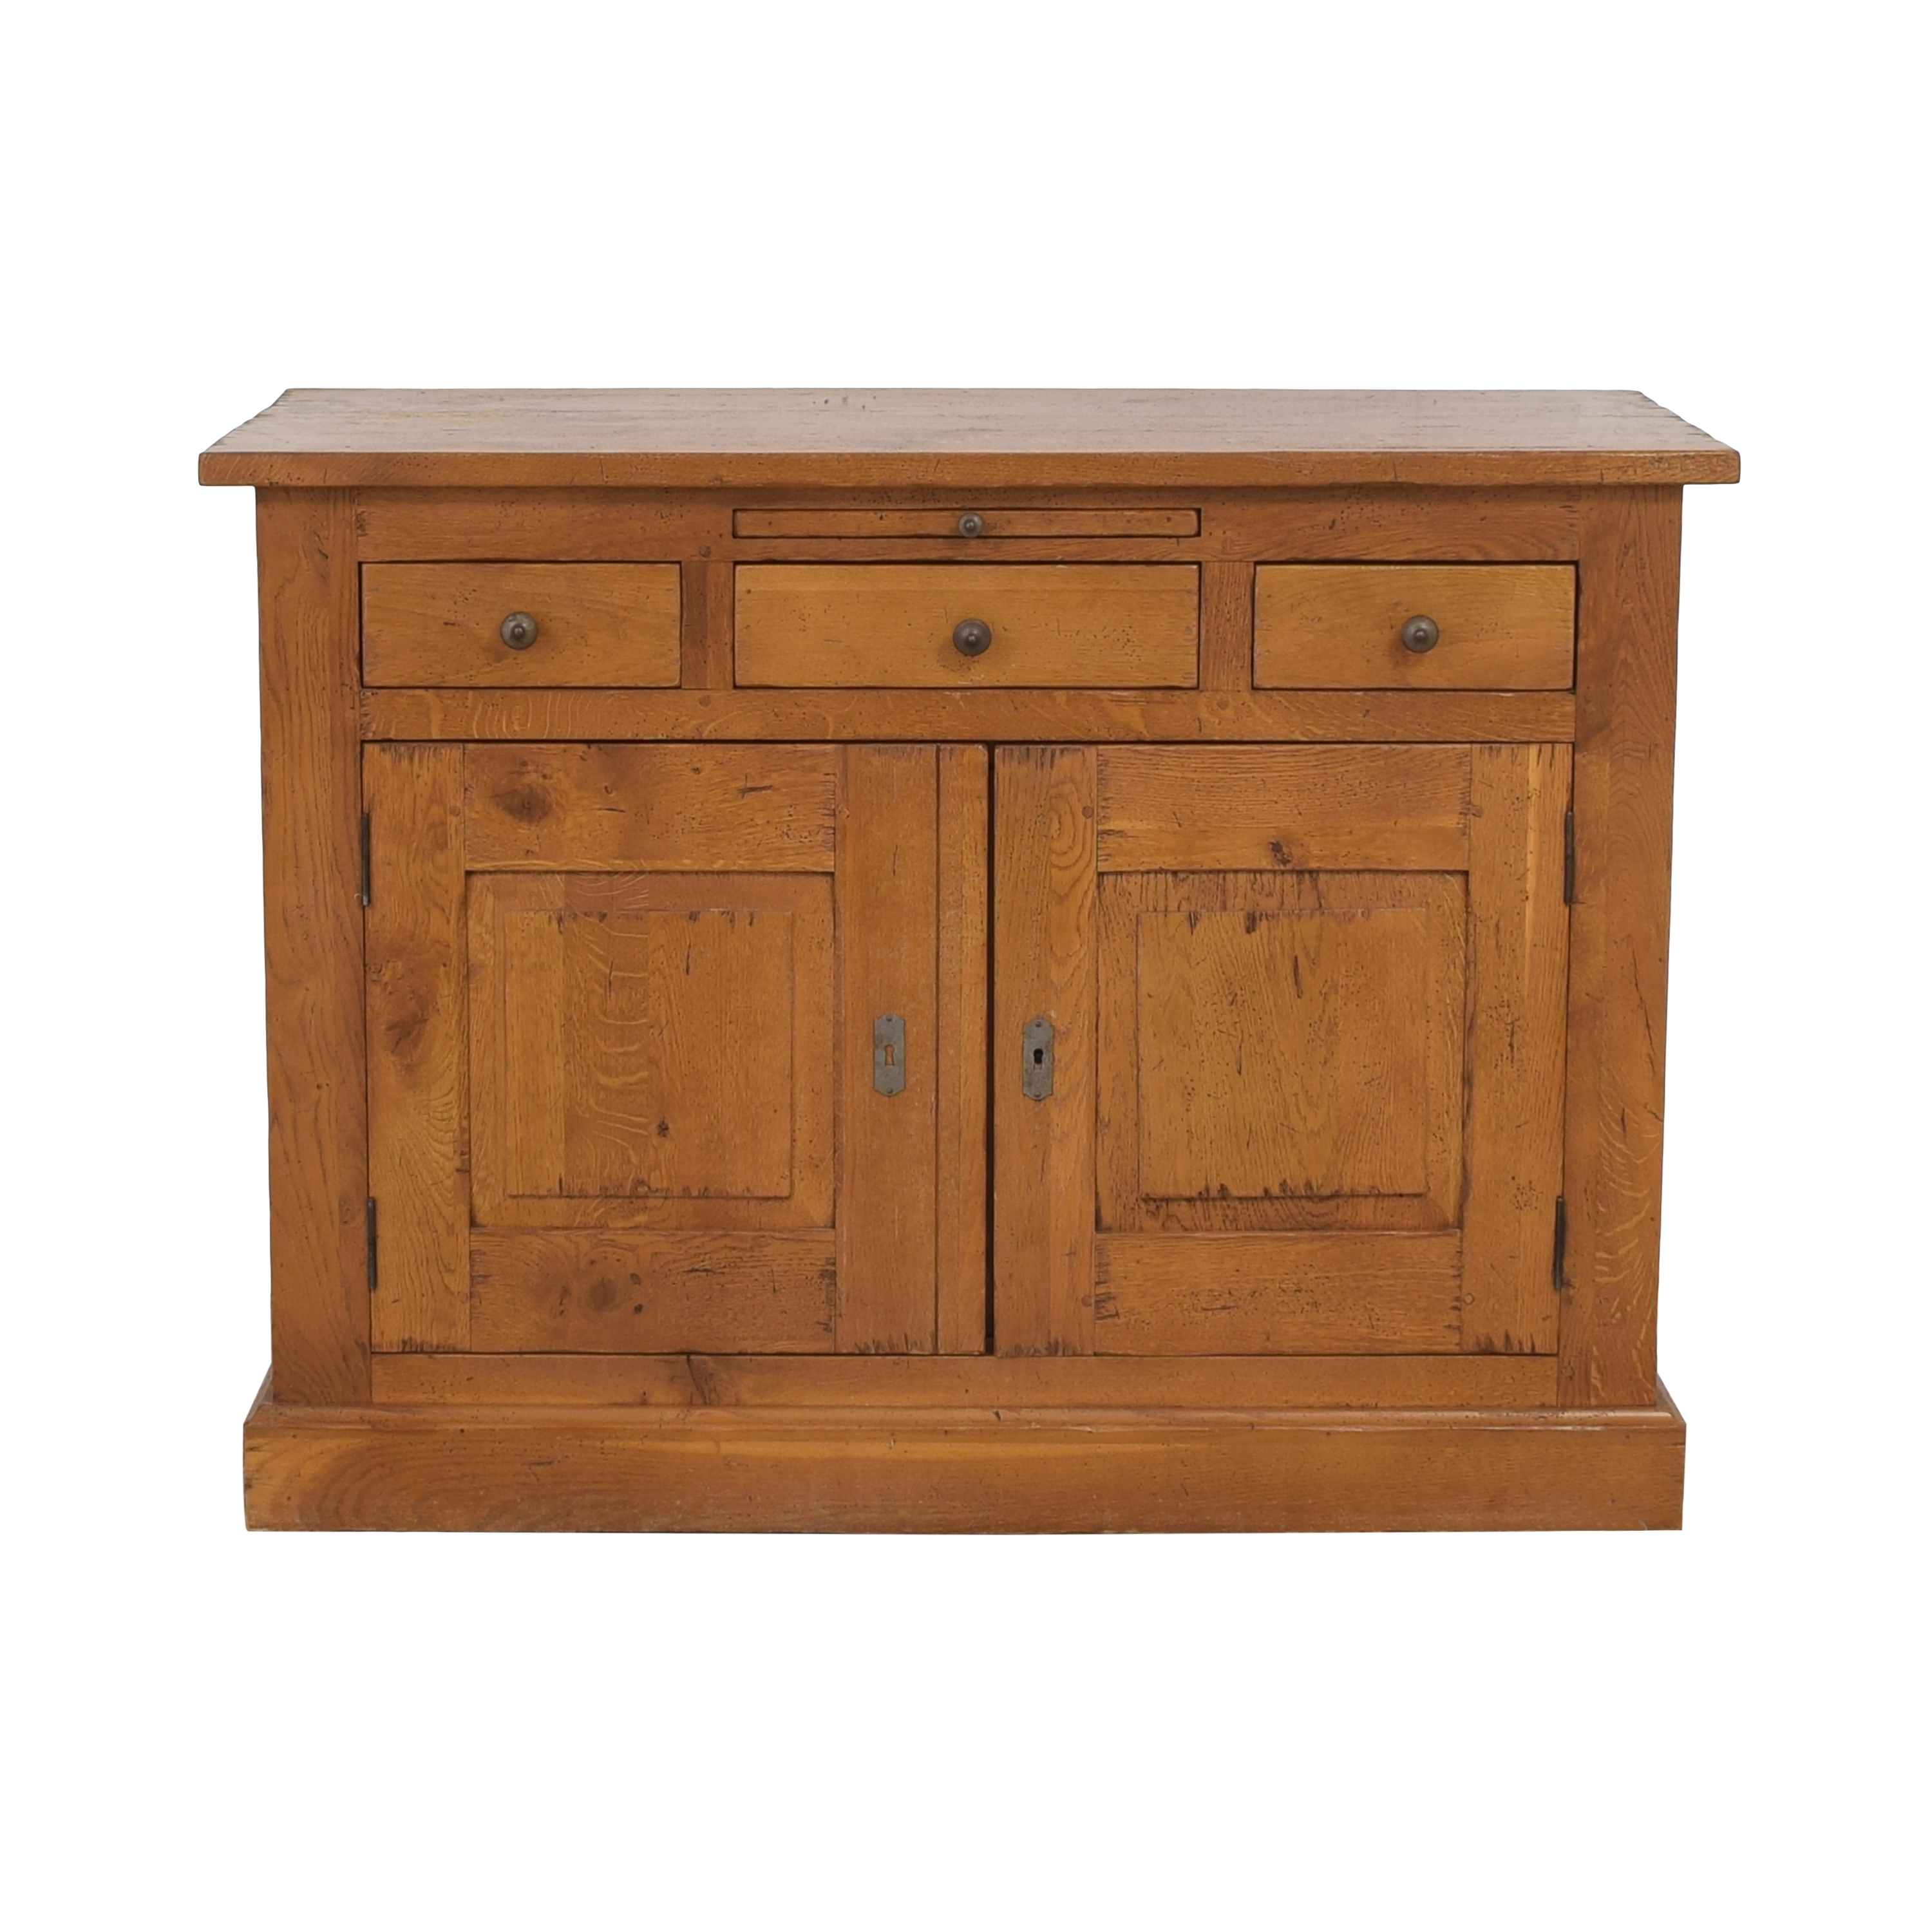 Crate & Barrel Crate & Barrel French Farm Sideboard used